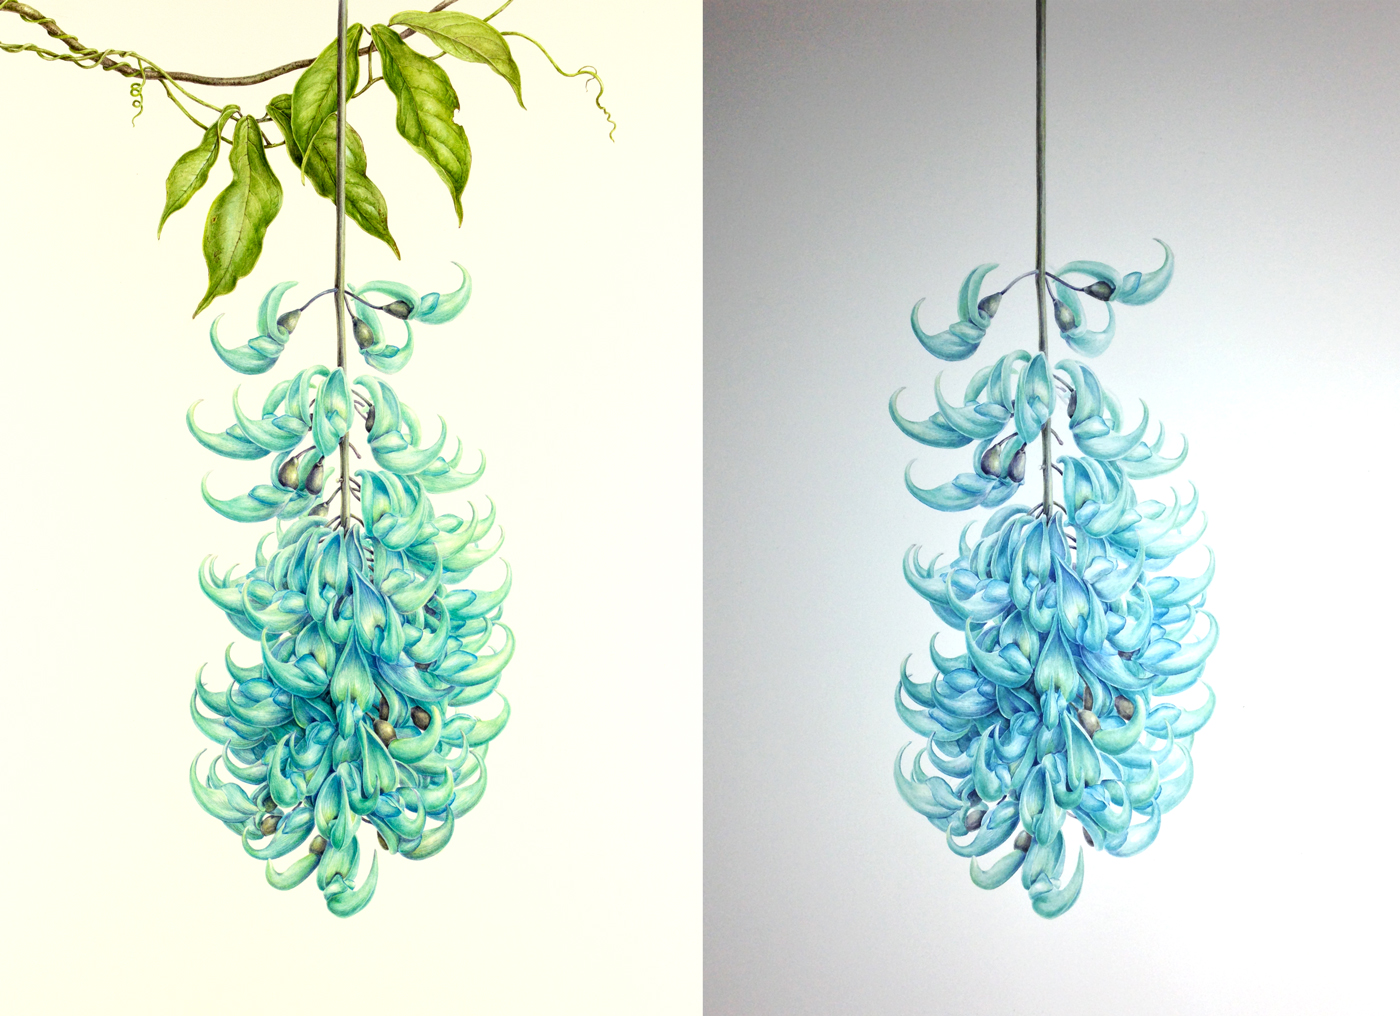 Jade vine painting photograph comparison